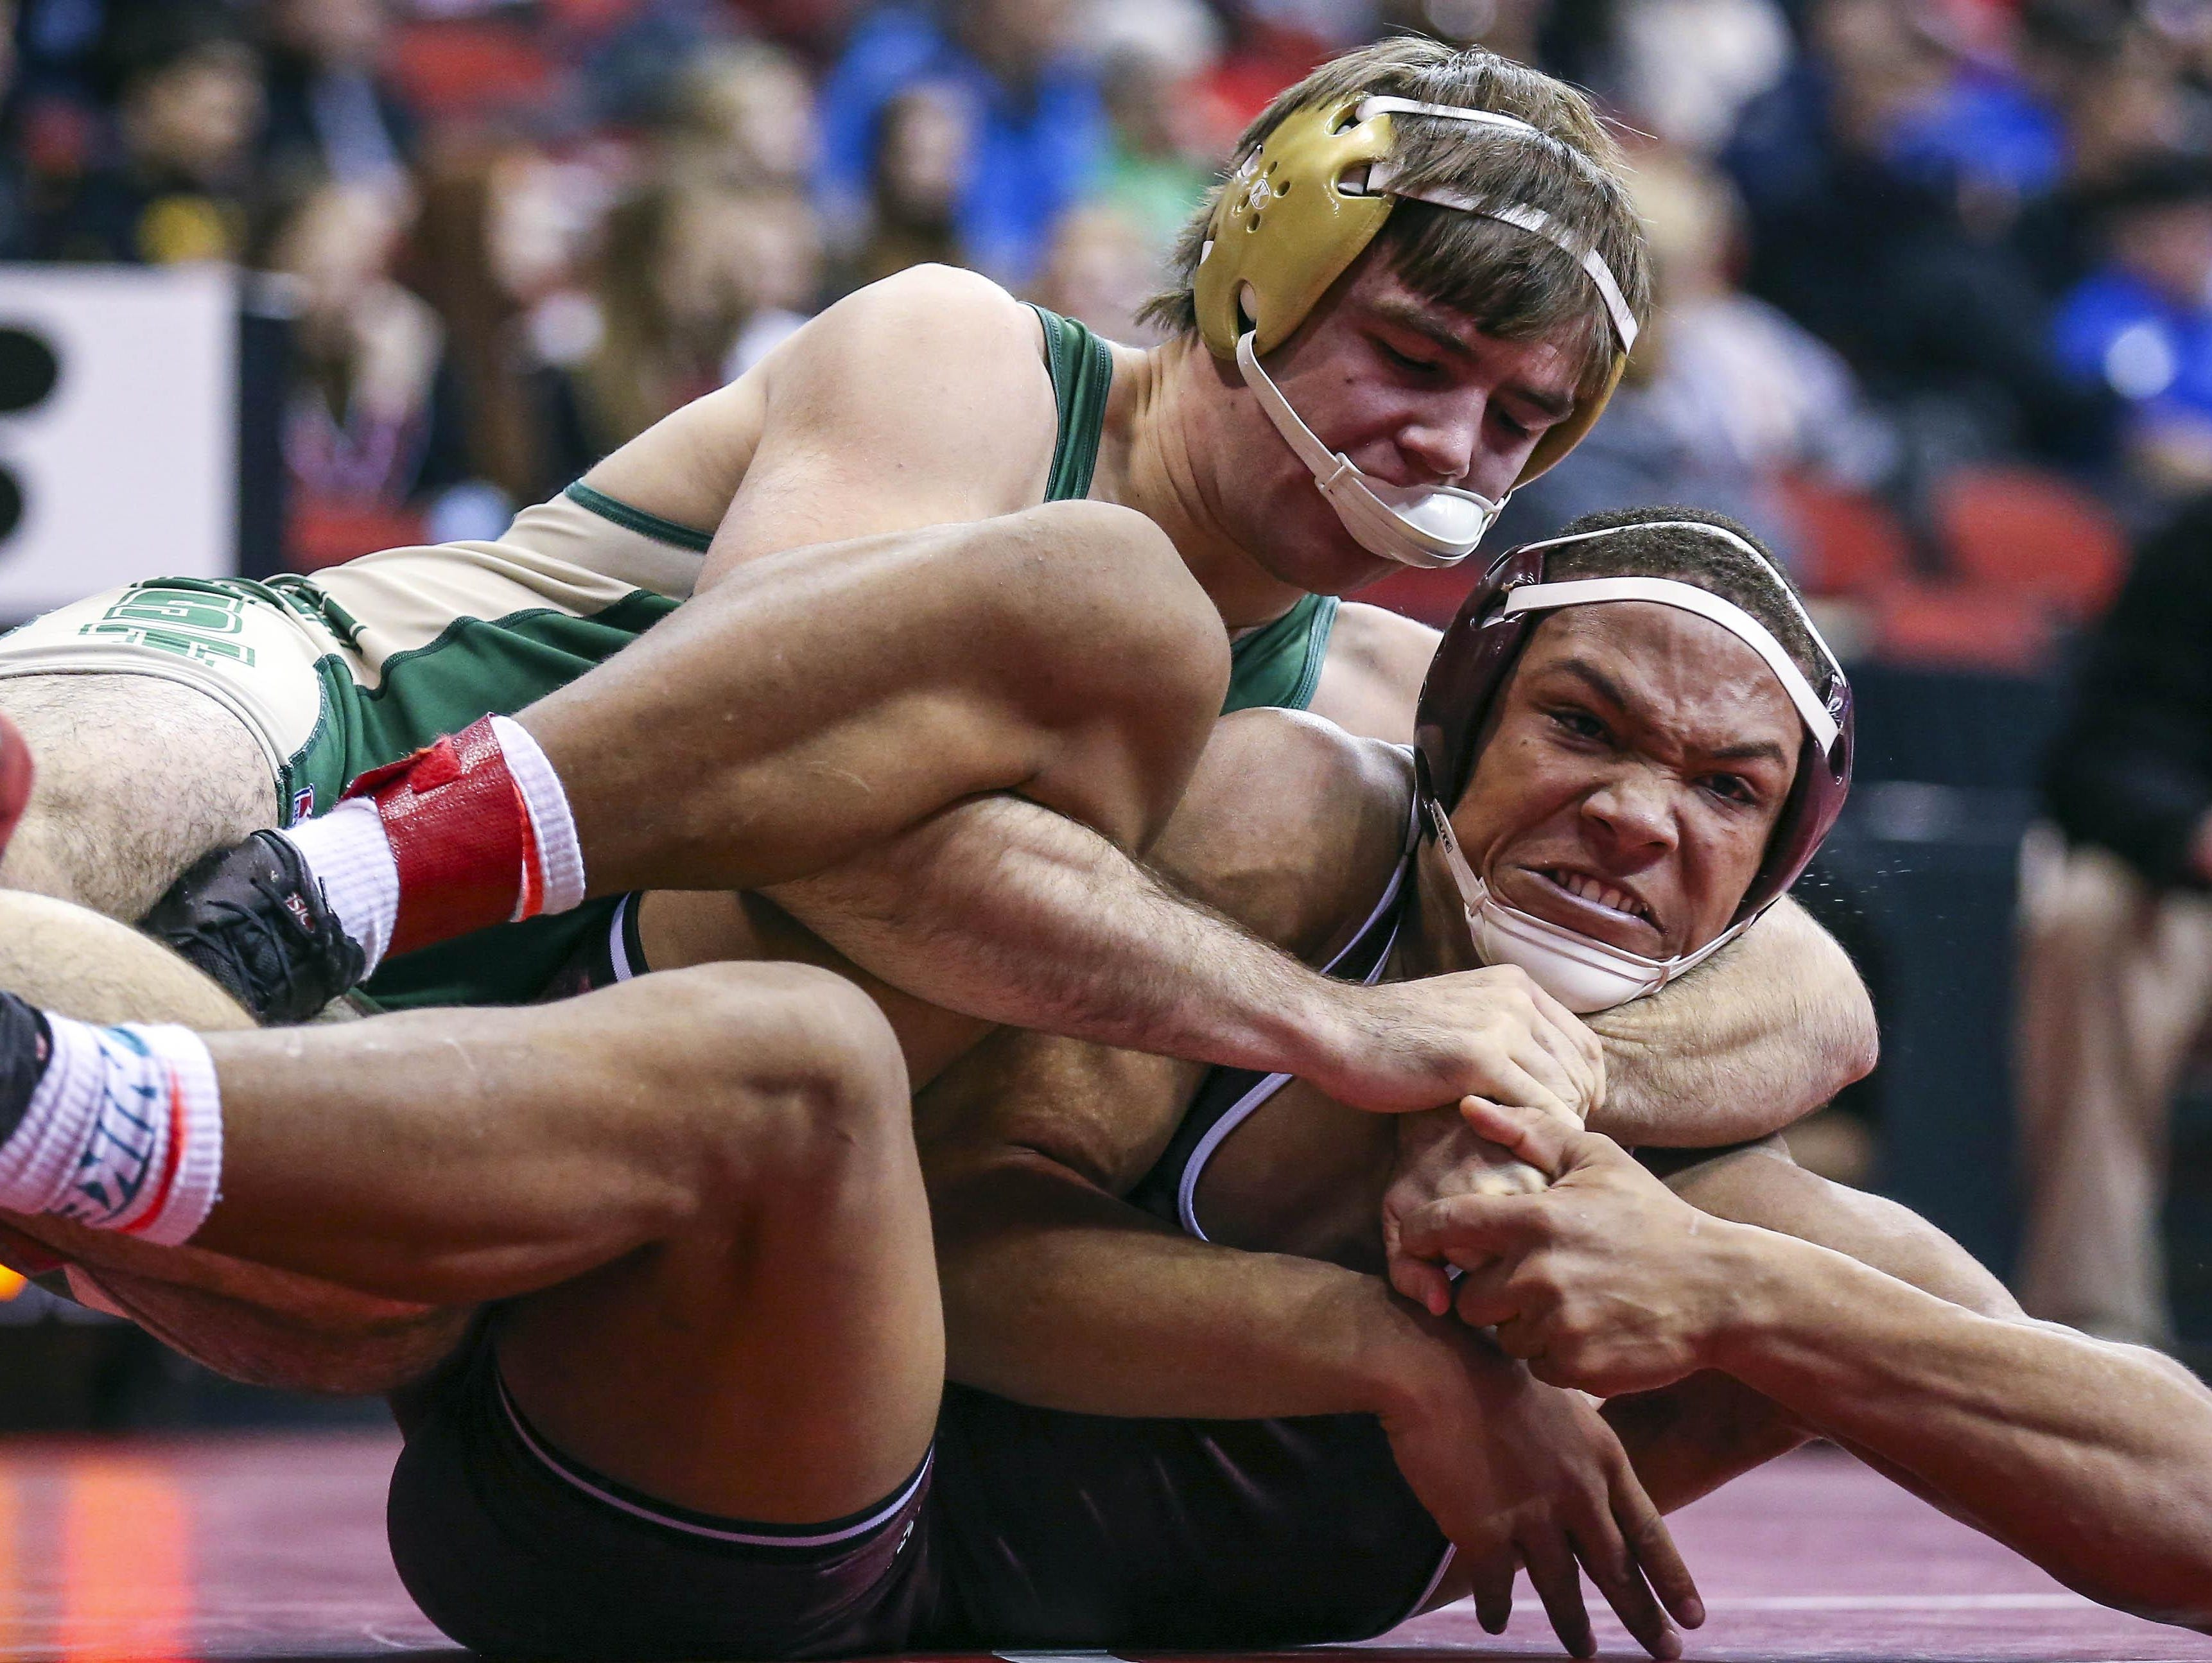 Iowa City West's Donovan Doyle, top, wrestles Dowling's Jacob Zachary during a Class 3A first-round match at the state tournament last season. Doyle is the Trojans' top wrestler returning.